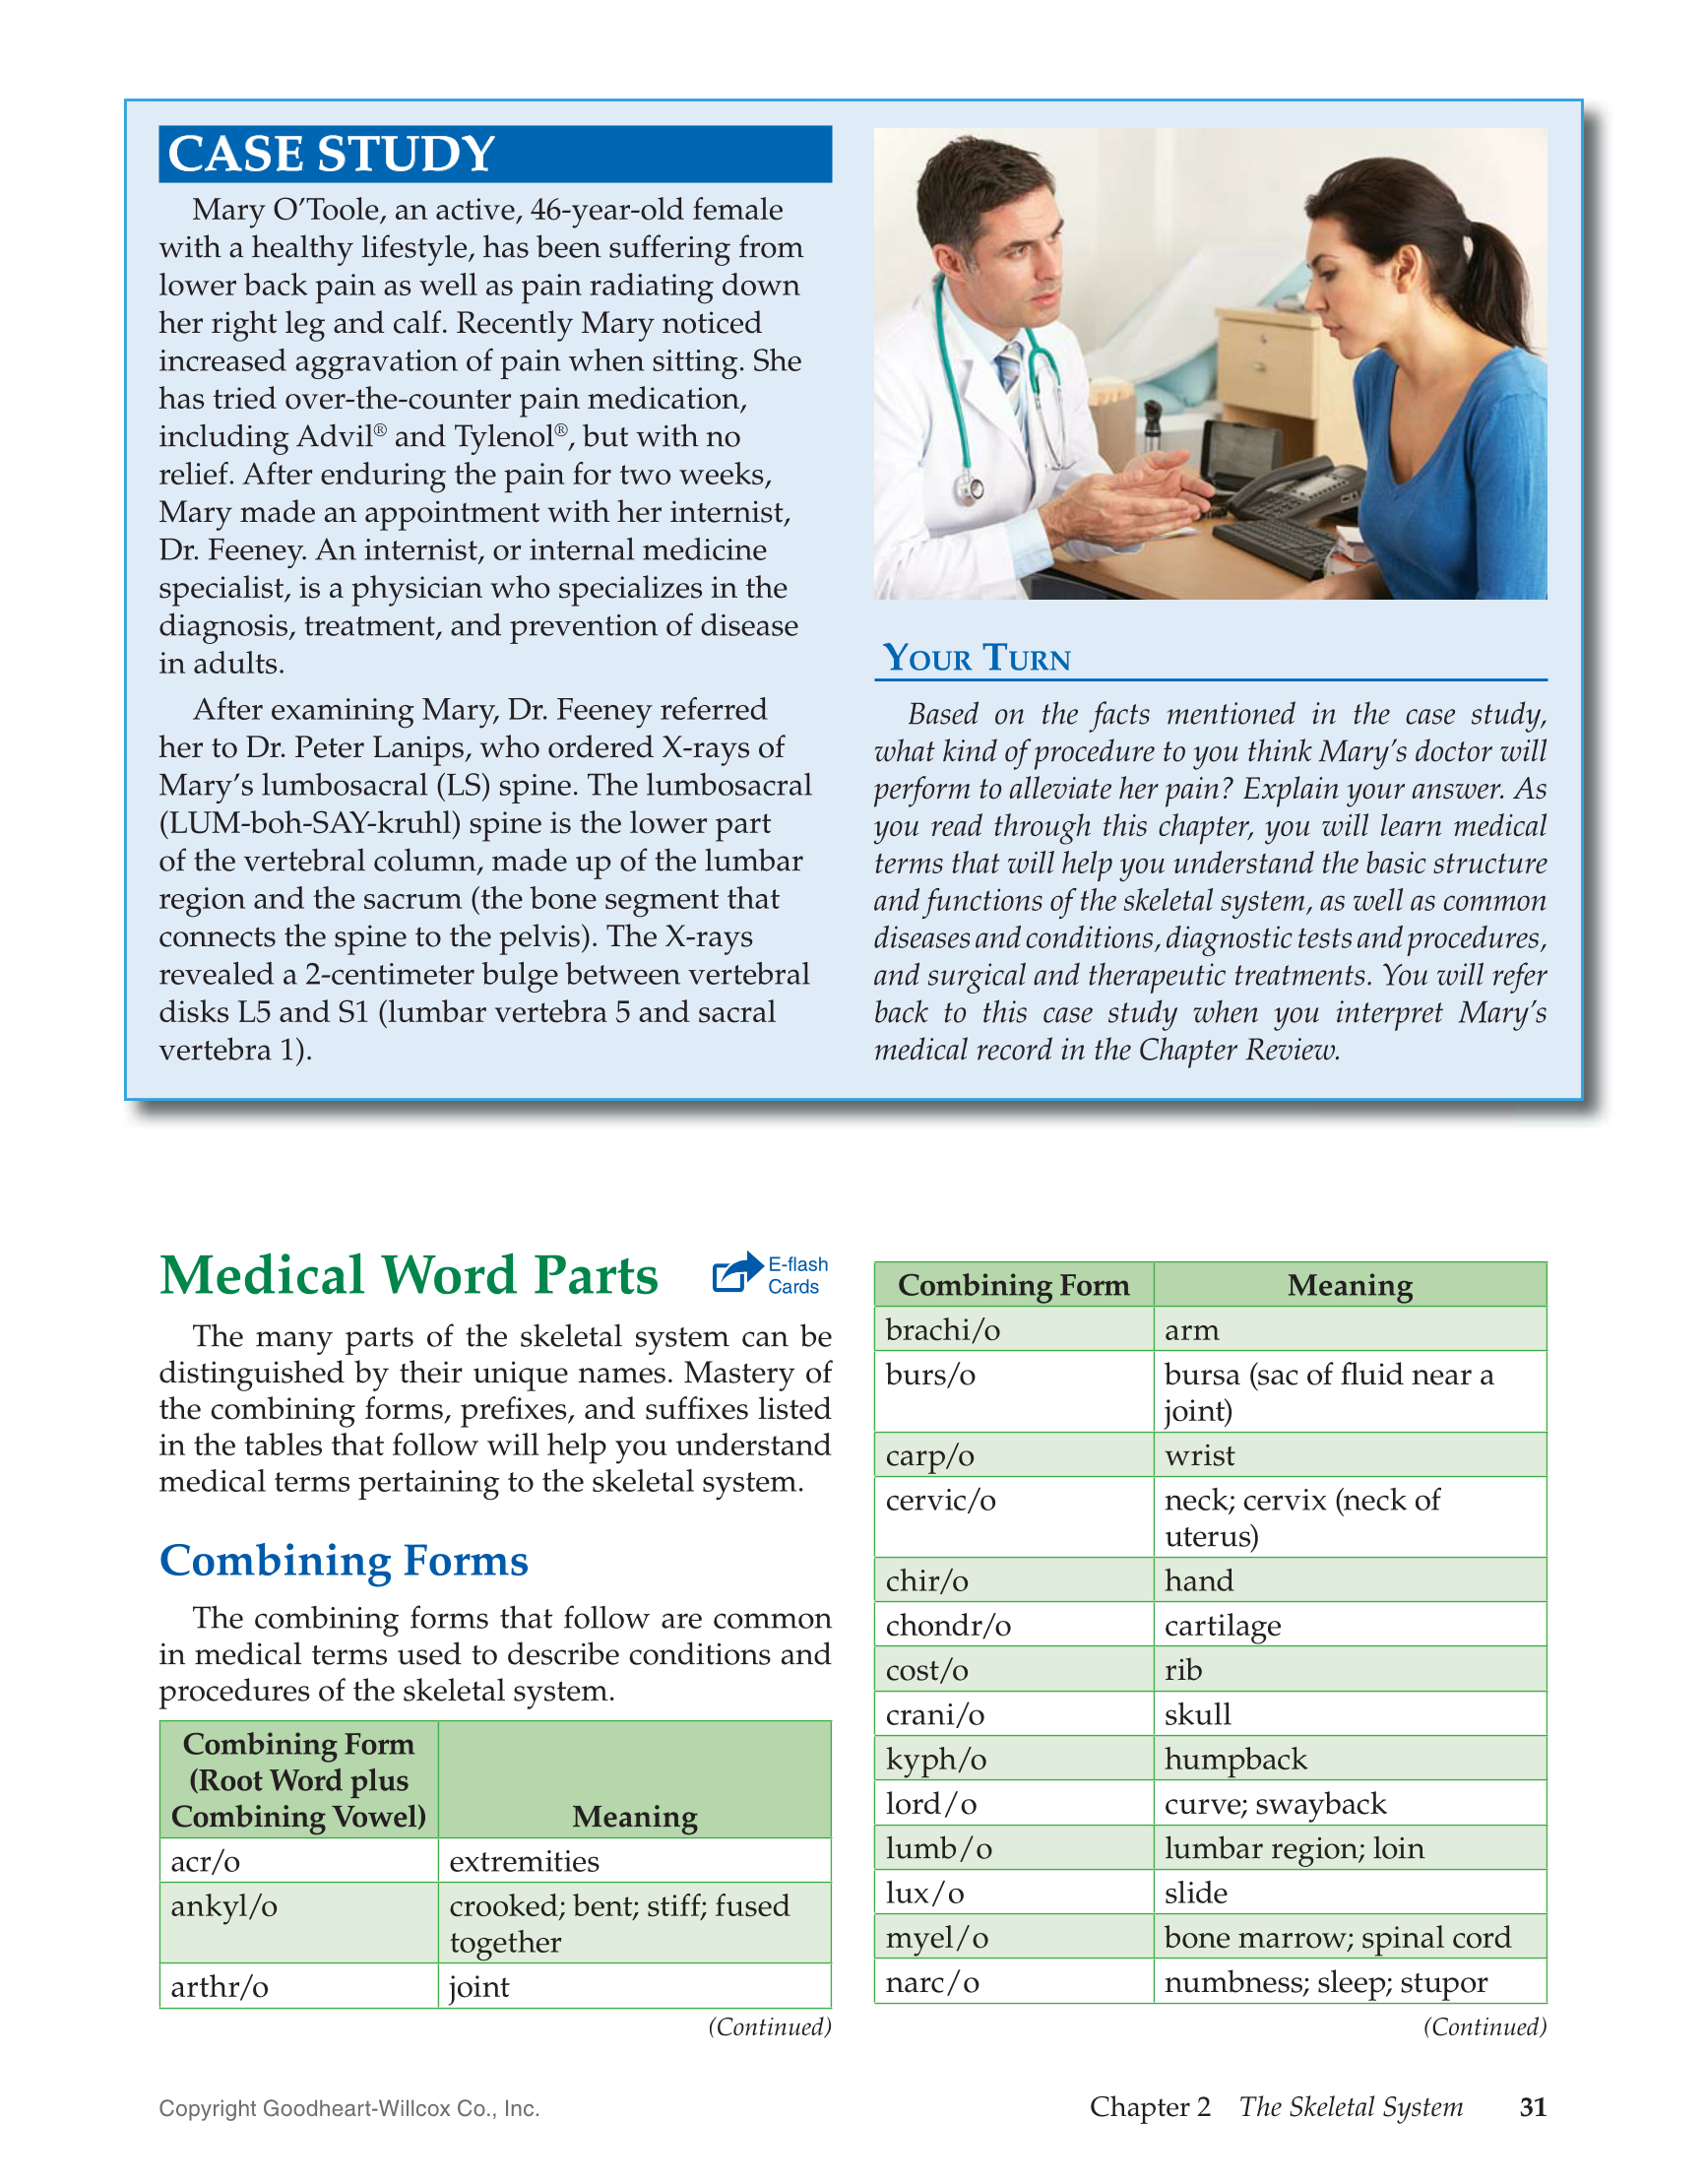 case studies for medical terminology students An assignment to write a case study for medical terminology as if i were responsible for writing the patient\'s medical record an assignment at colorado technical university online.